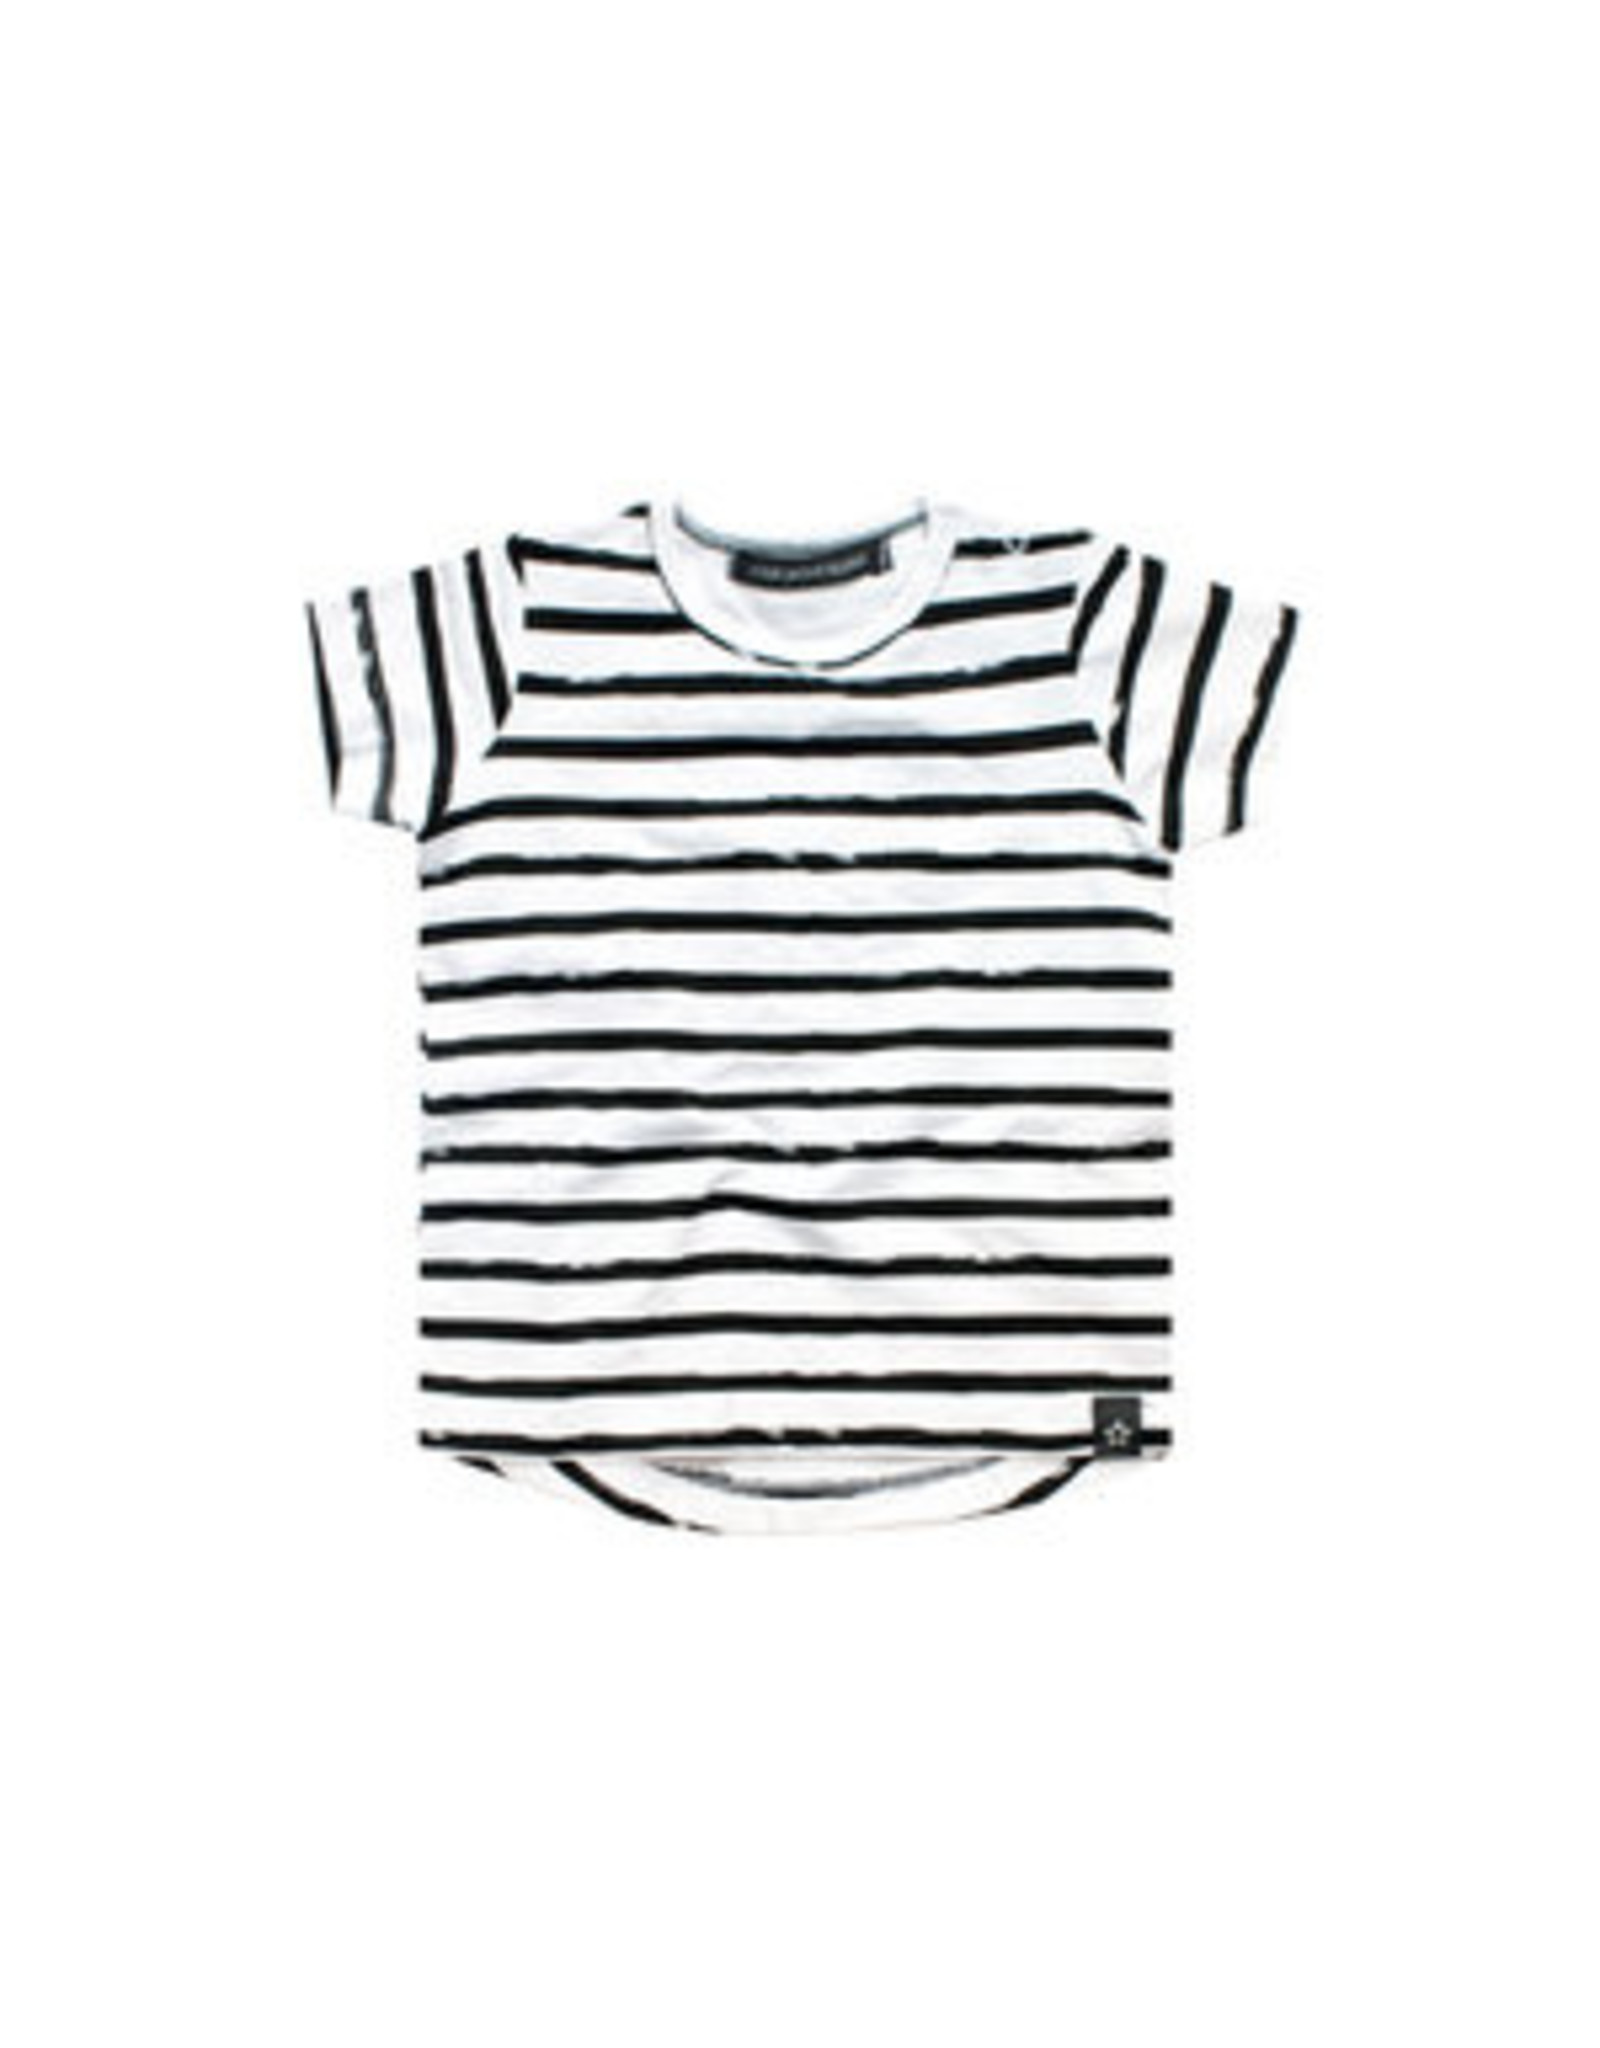 Your Wishes Stripes Off-White   Shortsleeve